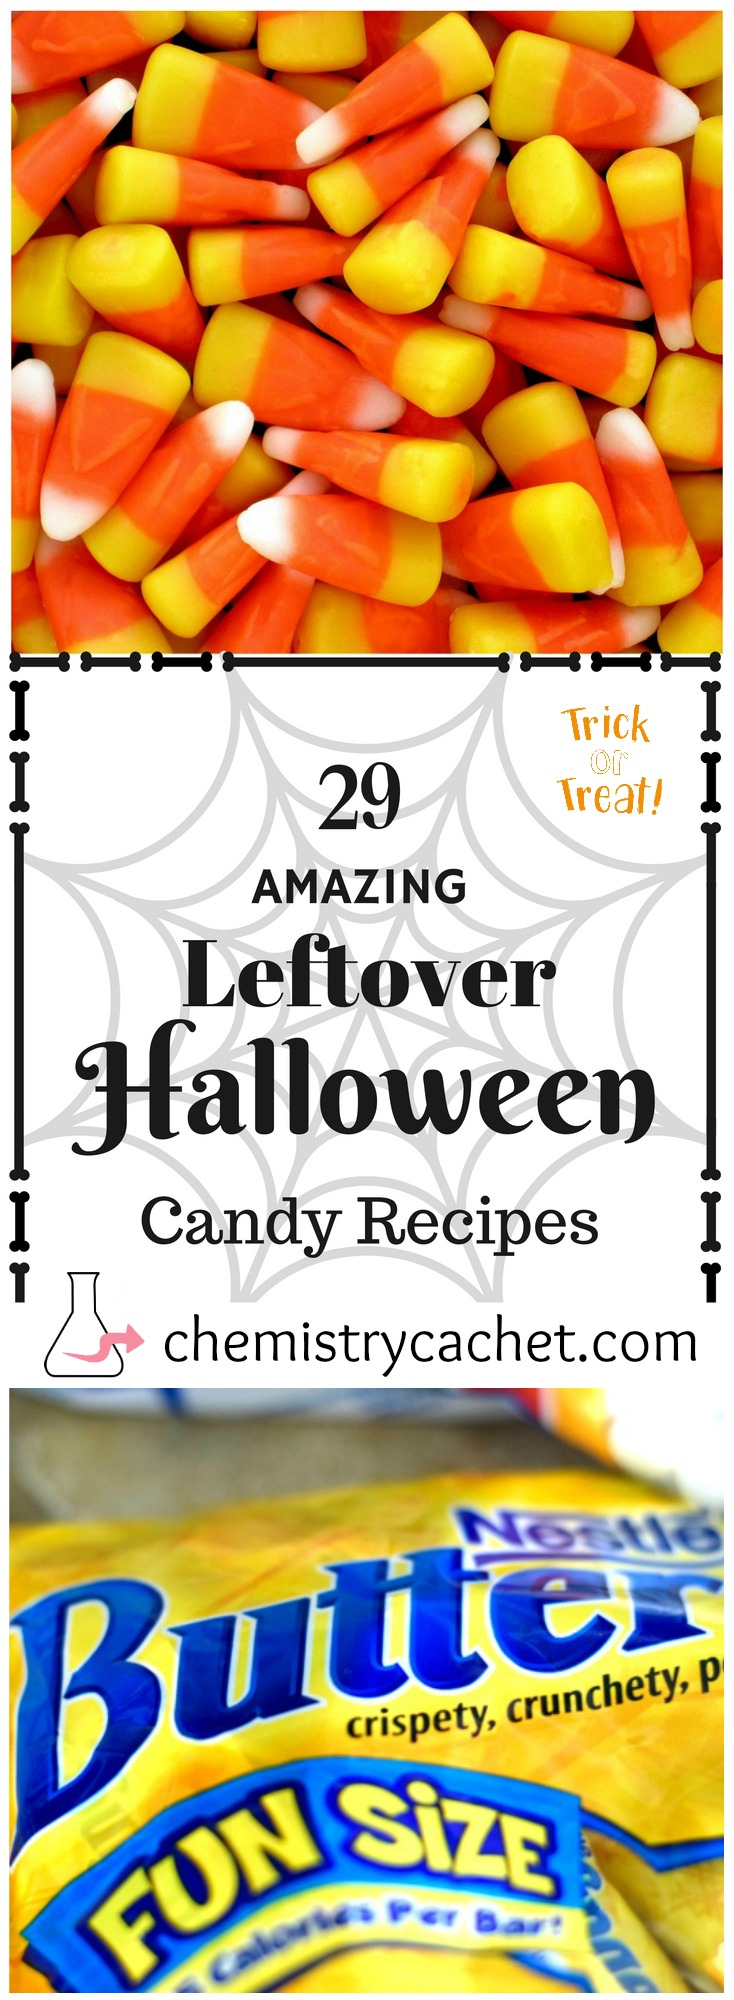 29 amazing leftover Halloween candy recipes! So many unique and fun options for everyone to enjoy on chemistrycachet.com Halloween Candy Recipes